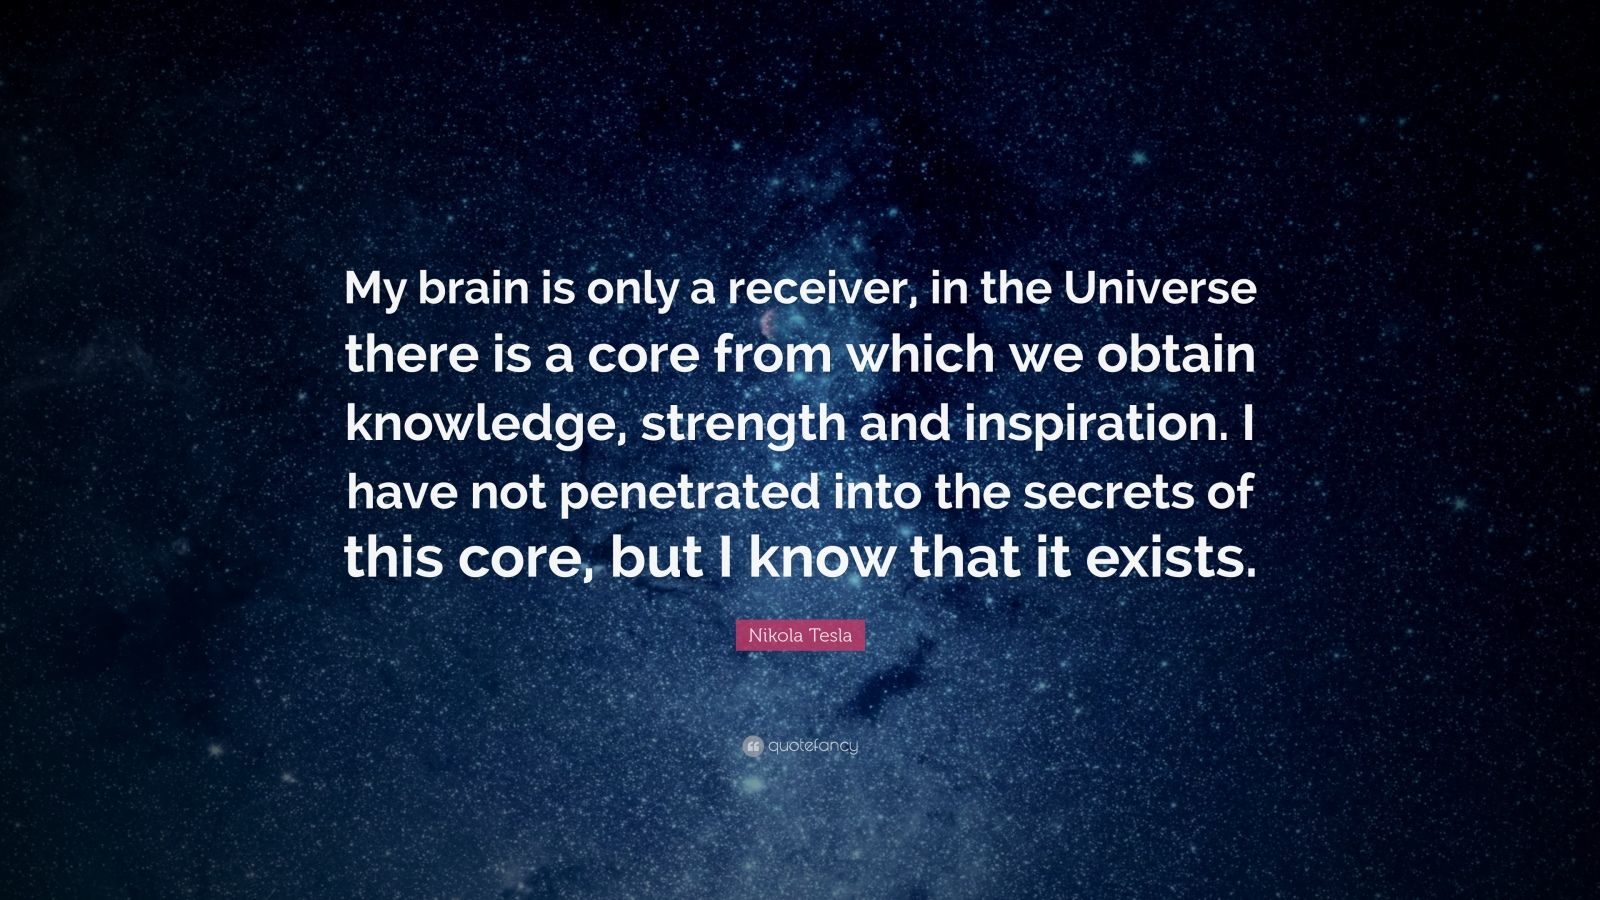 "Nikola Tesla Quote: ""My brain is only a receiver, in the Universe there is a core from which we obtain knowledge, strength and inspiration.  I have not penetrated into the secrets of this core, but I know that it exists."""